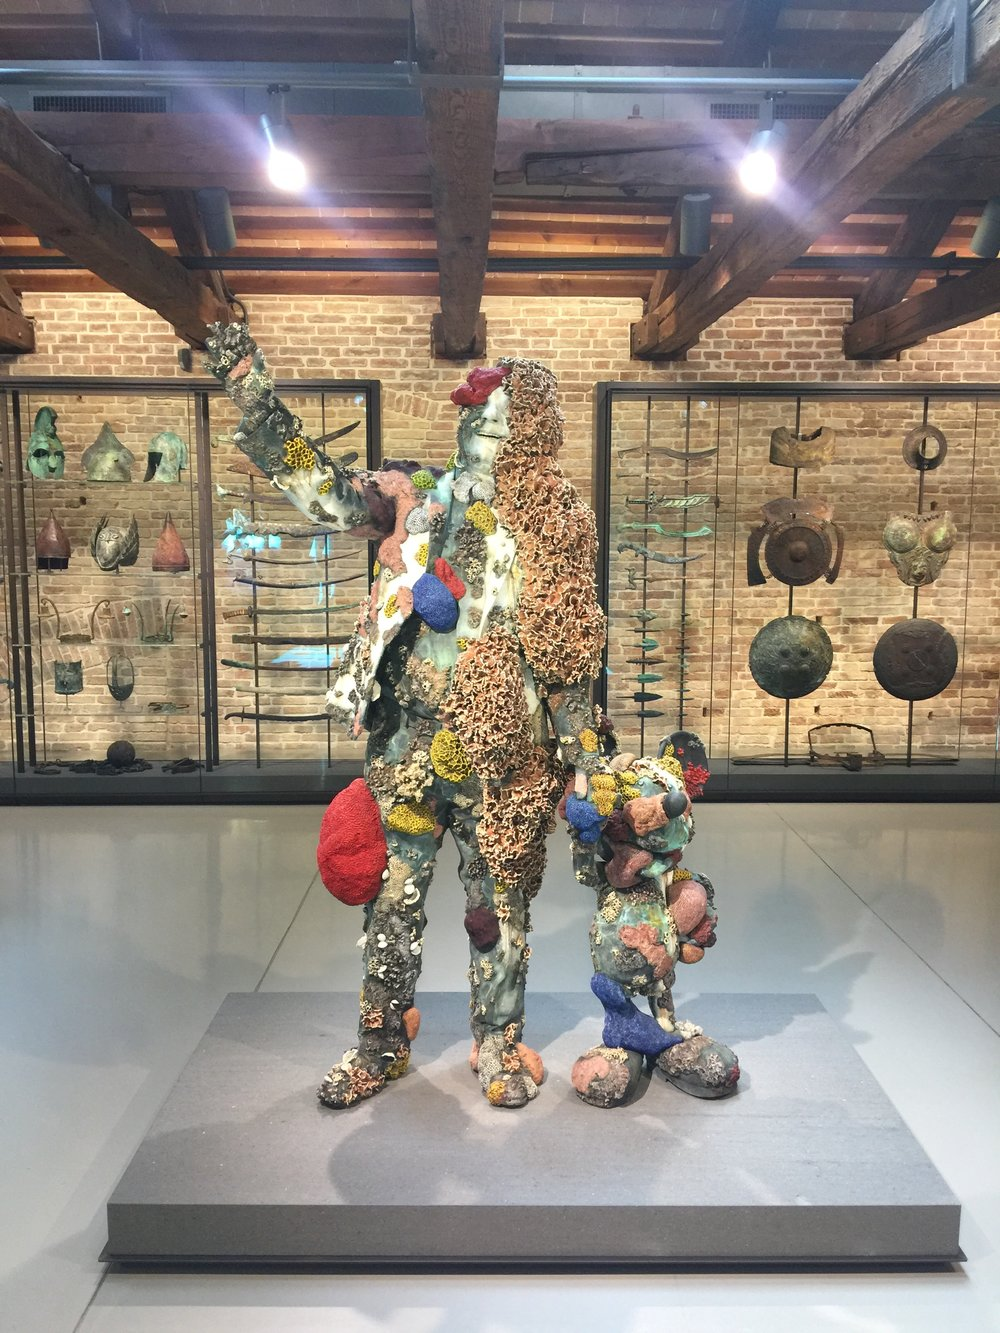 """""""The Collector with Friend"""" by Damien Hirst, 2017 Photo Credit: Nicolas Tanner"""